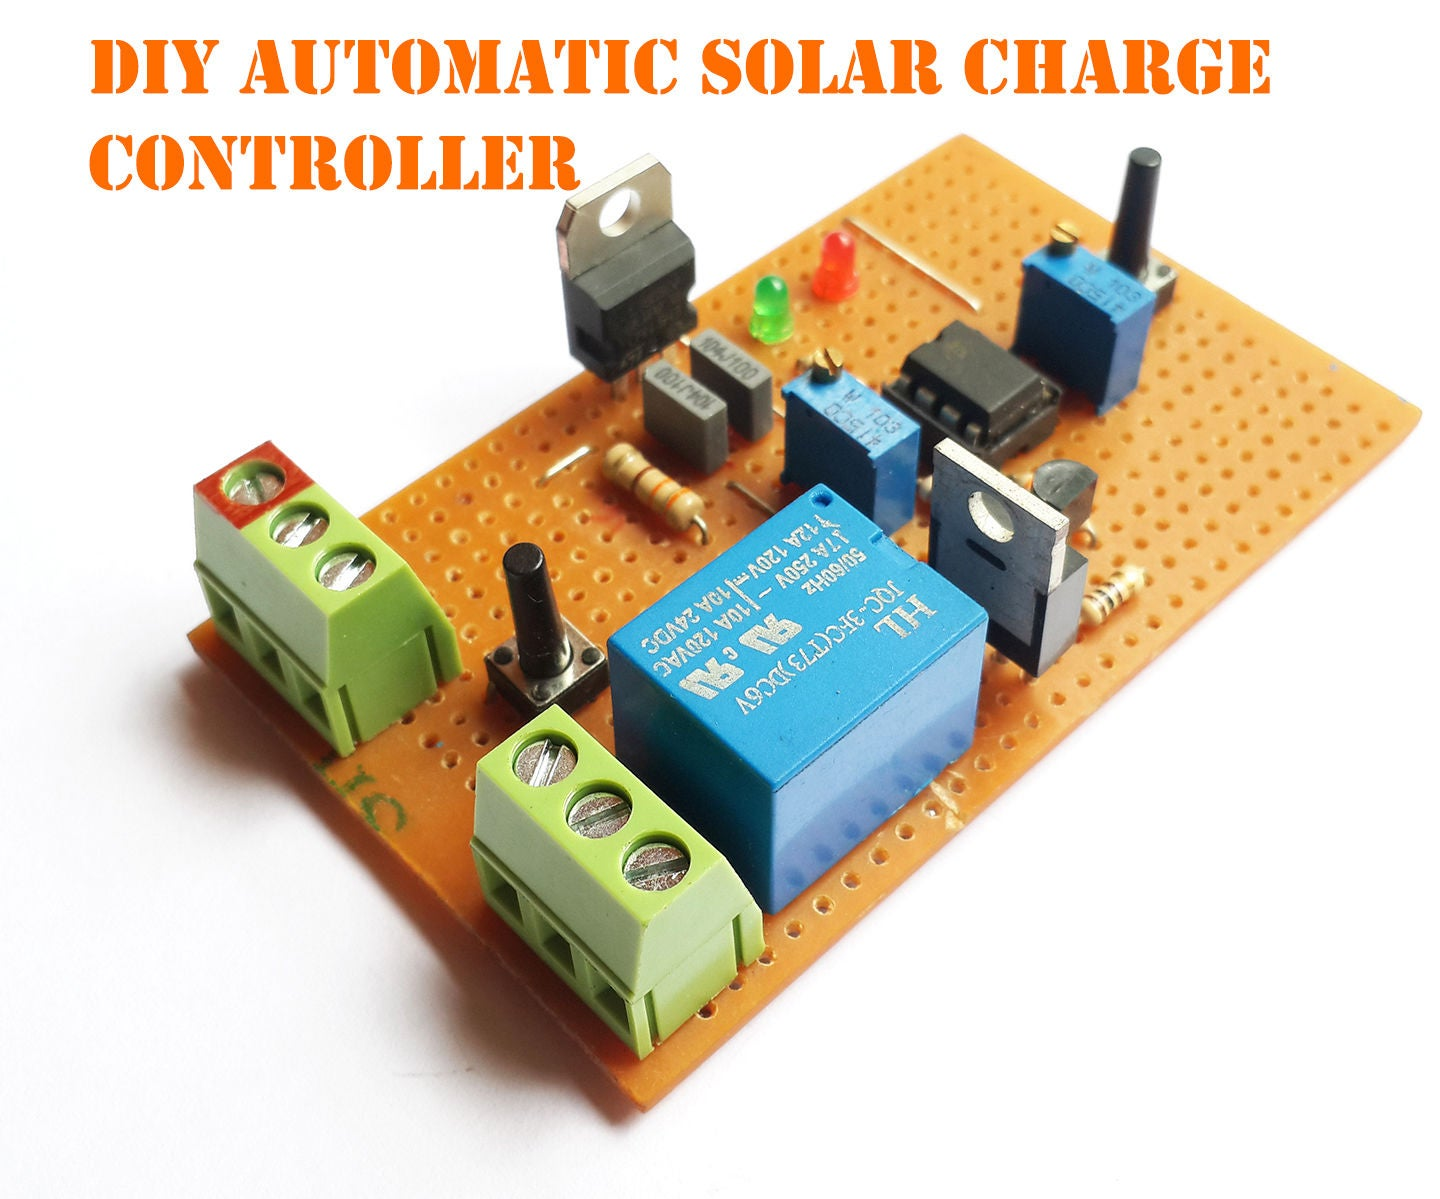 Diy Automatic Solar Charge Controller 7 Steps With Pictures Changeover Switch Circuit Using 555 Timer